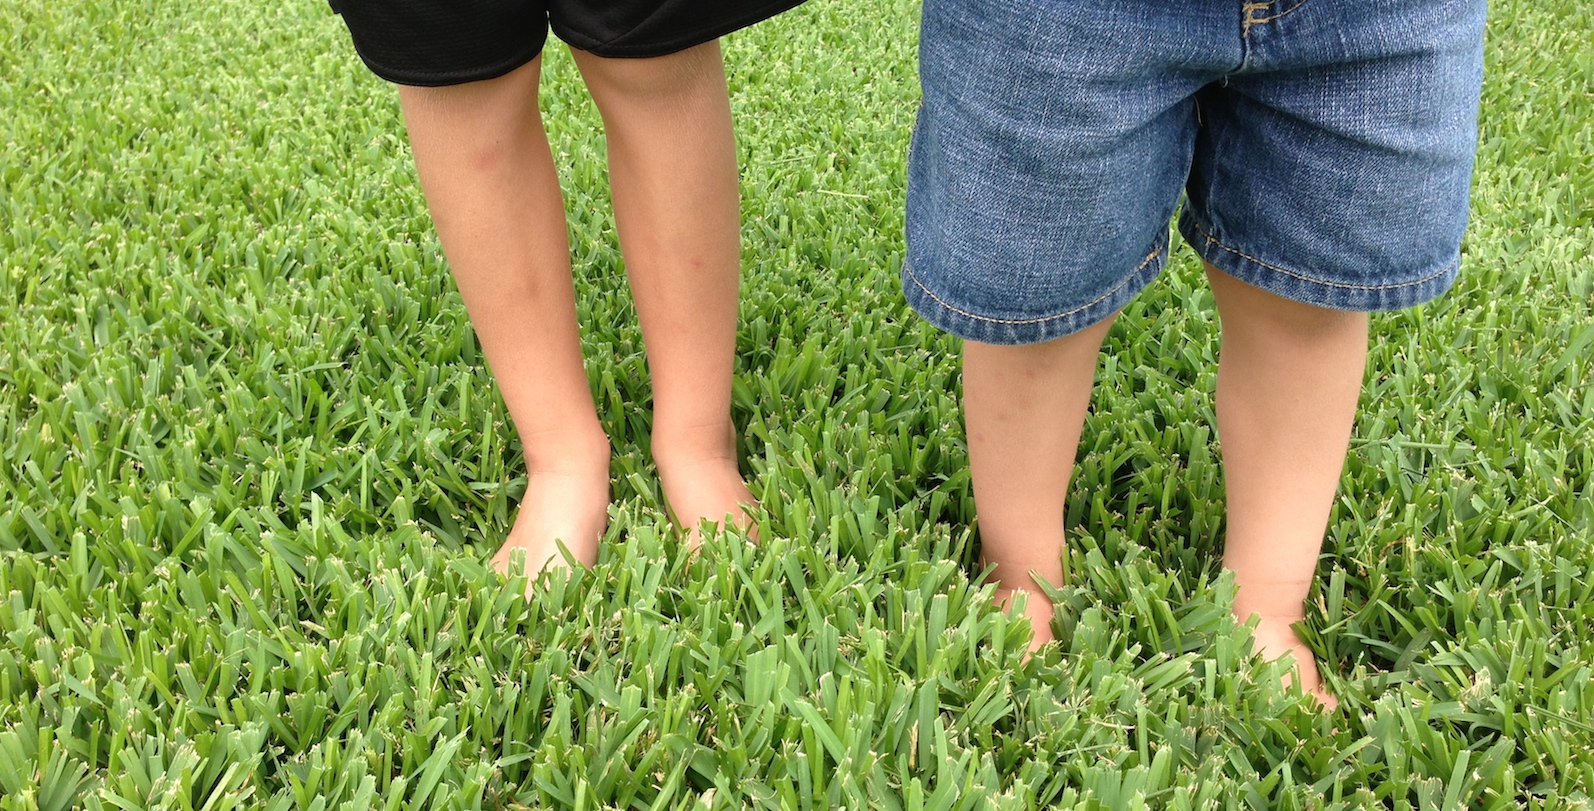 How to Kill Weeds in St  Augustine Grass - Houston Katy